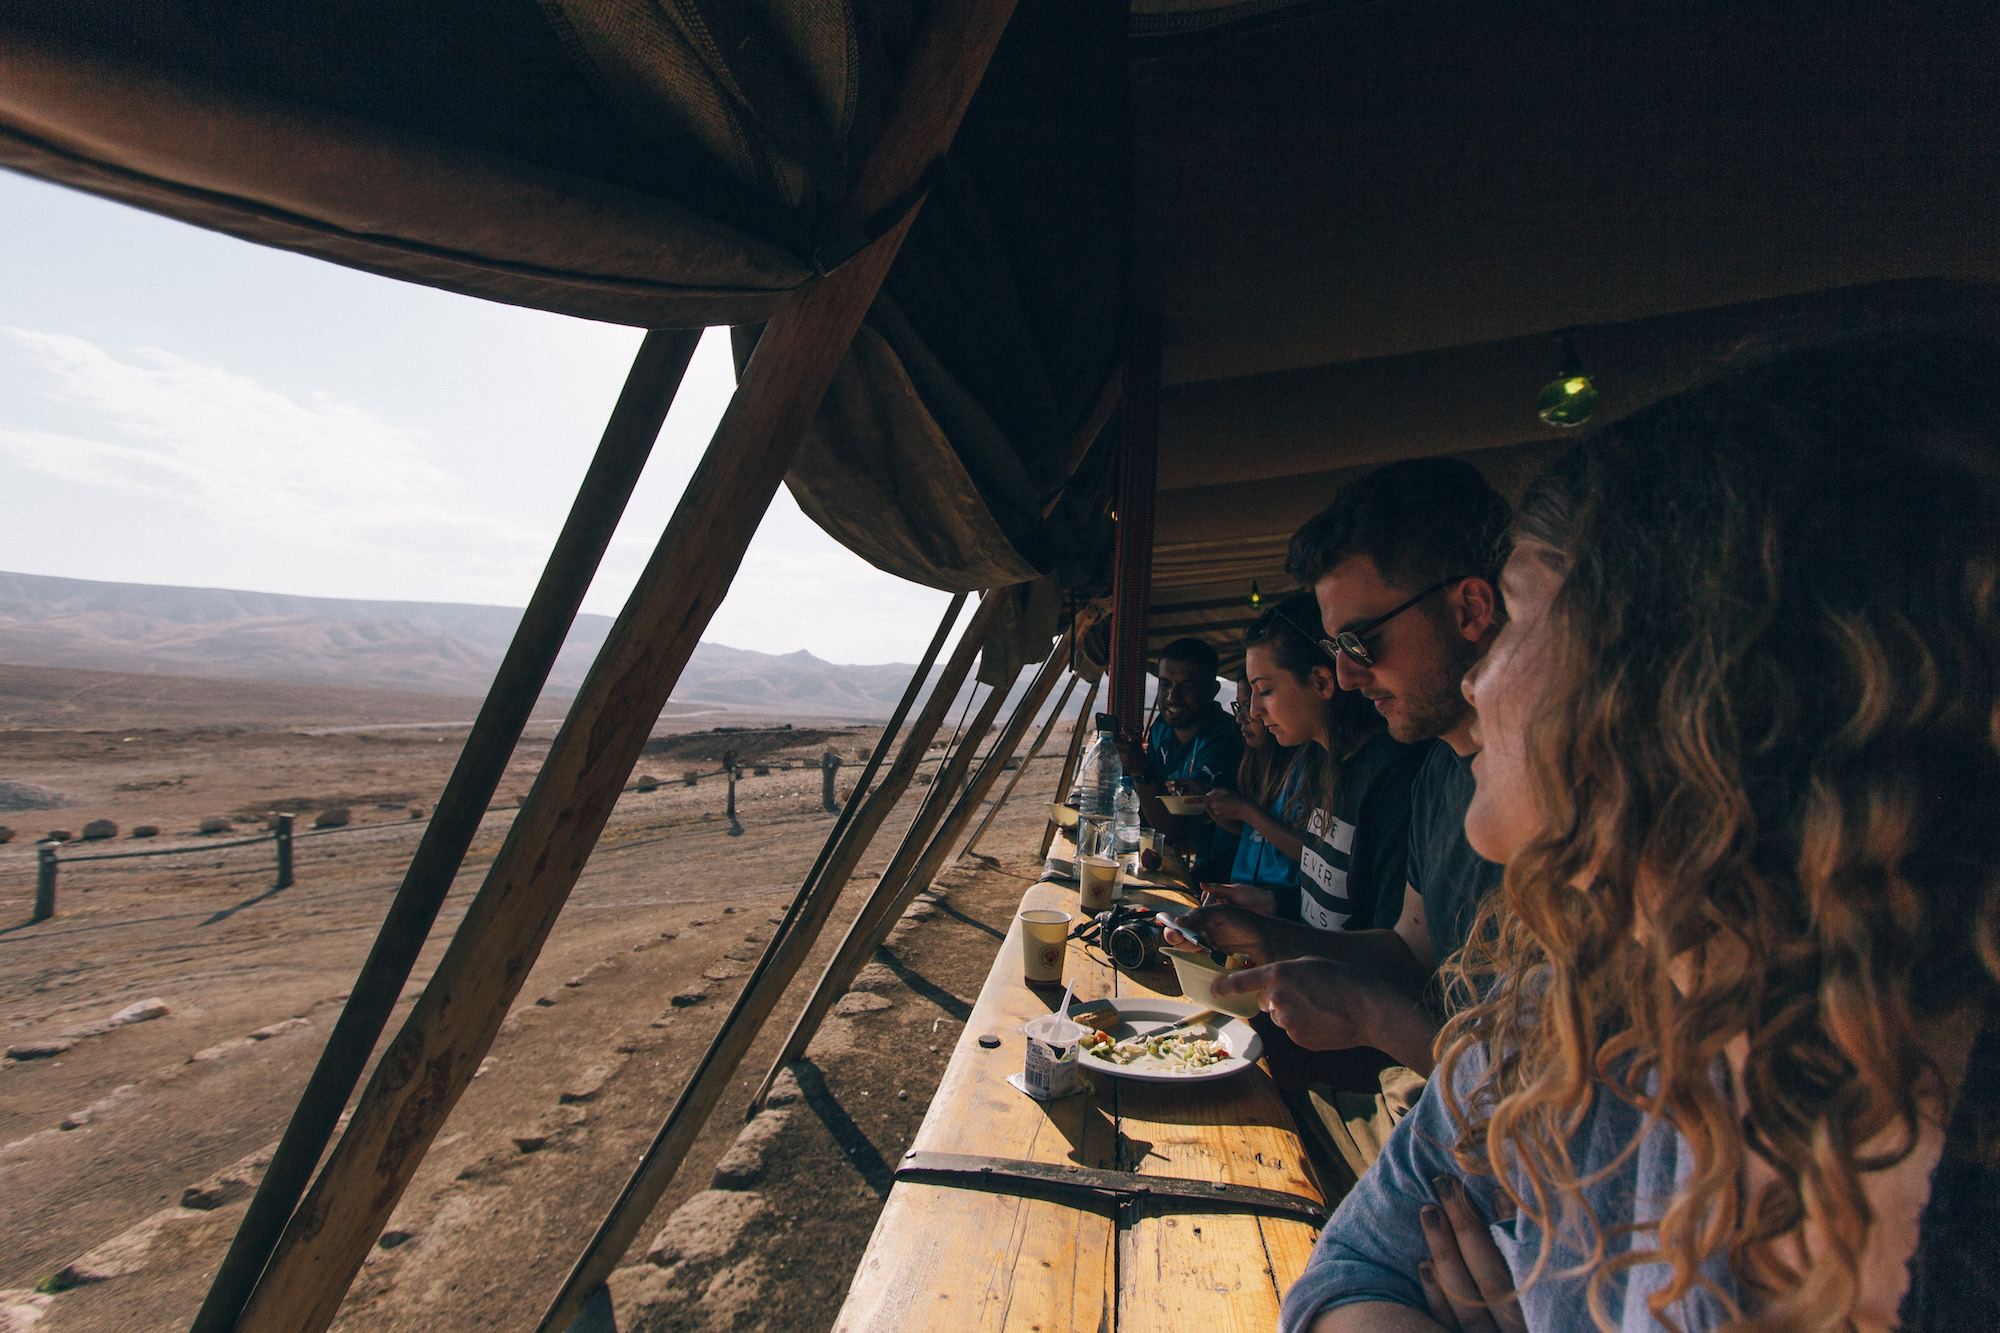 Kfar Hanokdim - Whilst in the desert we spend the night in some beduin tents at Kfar Hanokdim. If you can stay there, do it, because coming back for breakfast after the sunrise at Masada and eating with views like this is incredible.